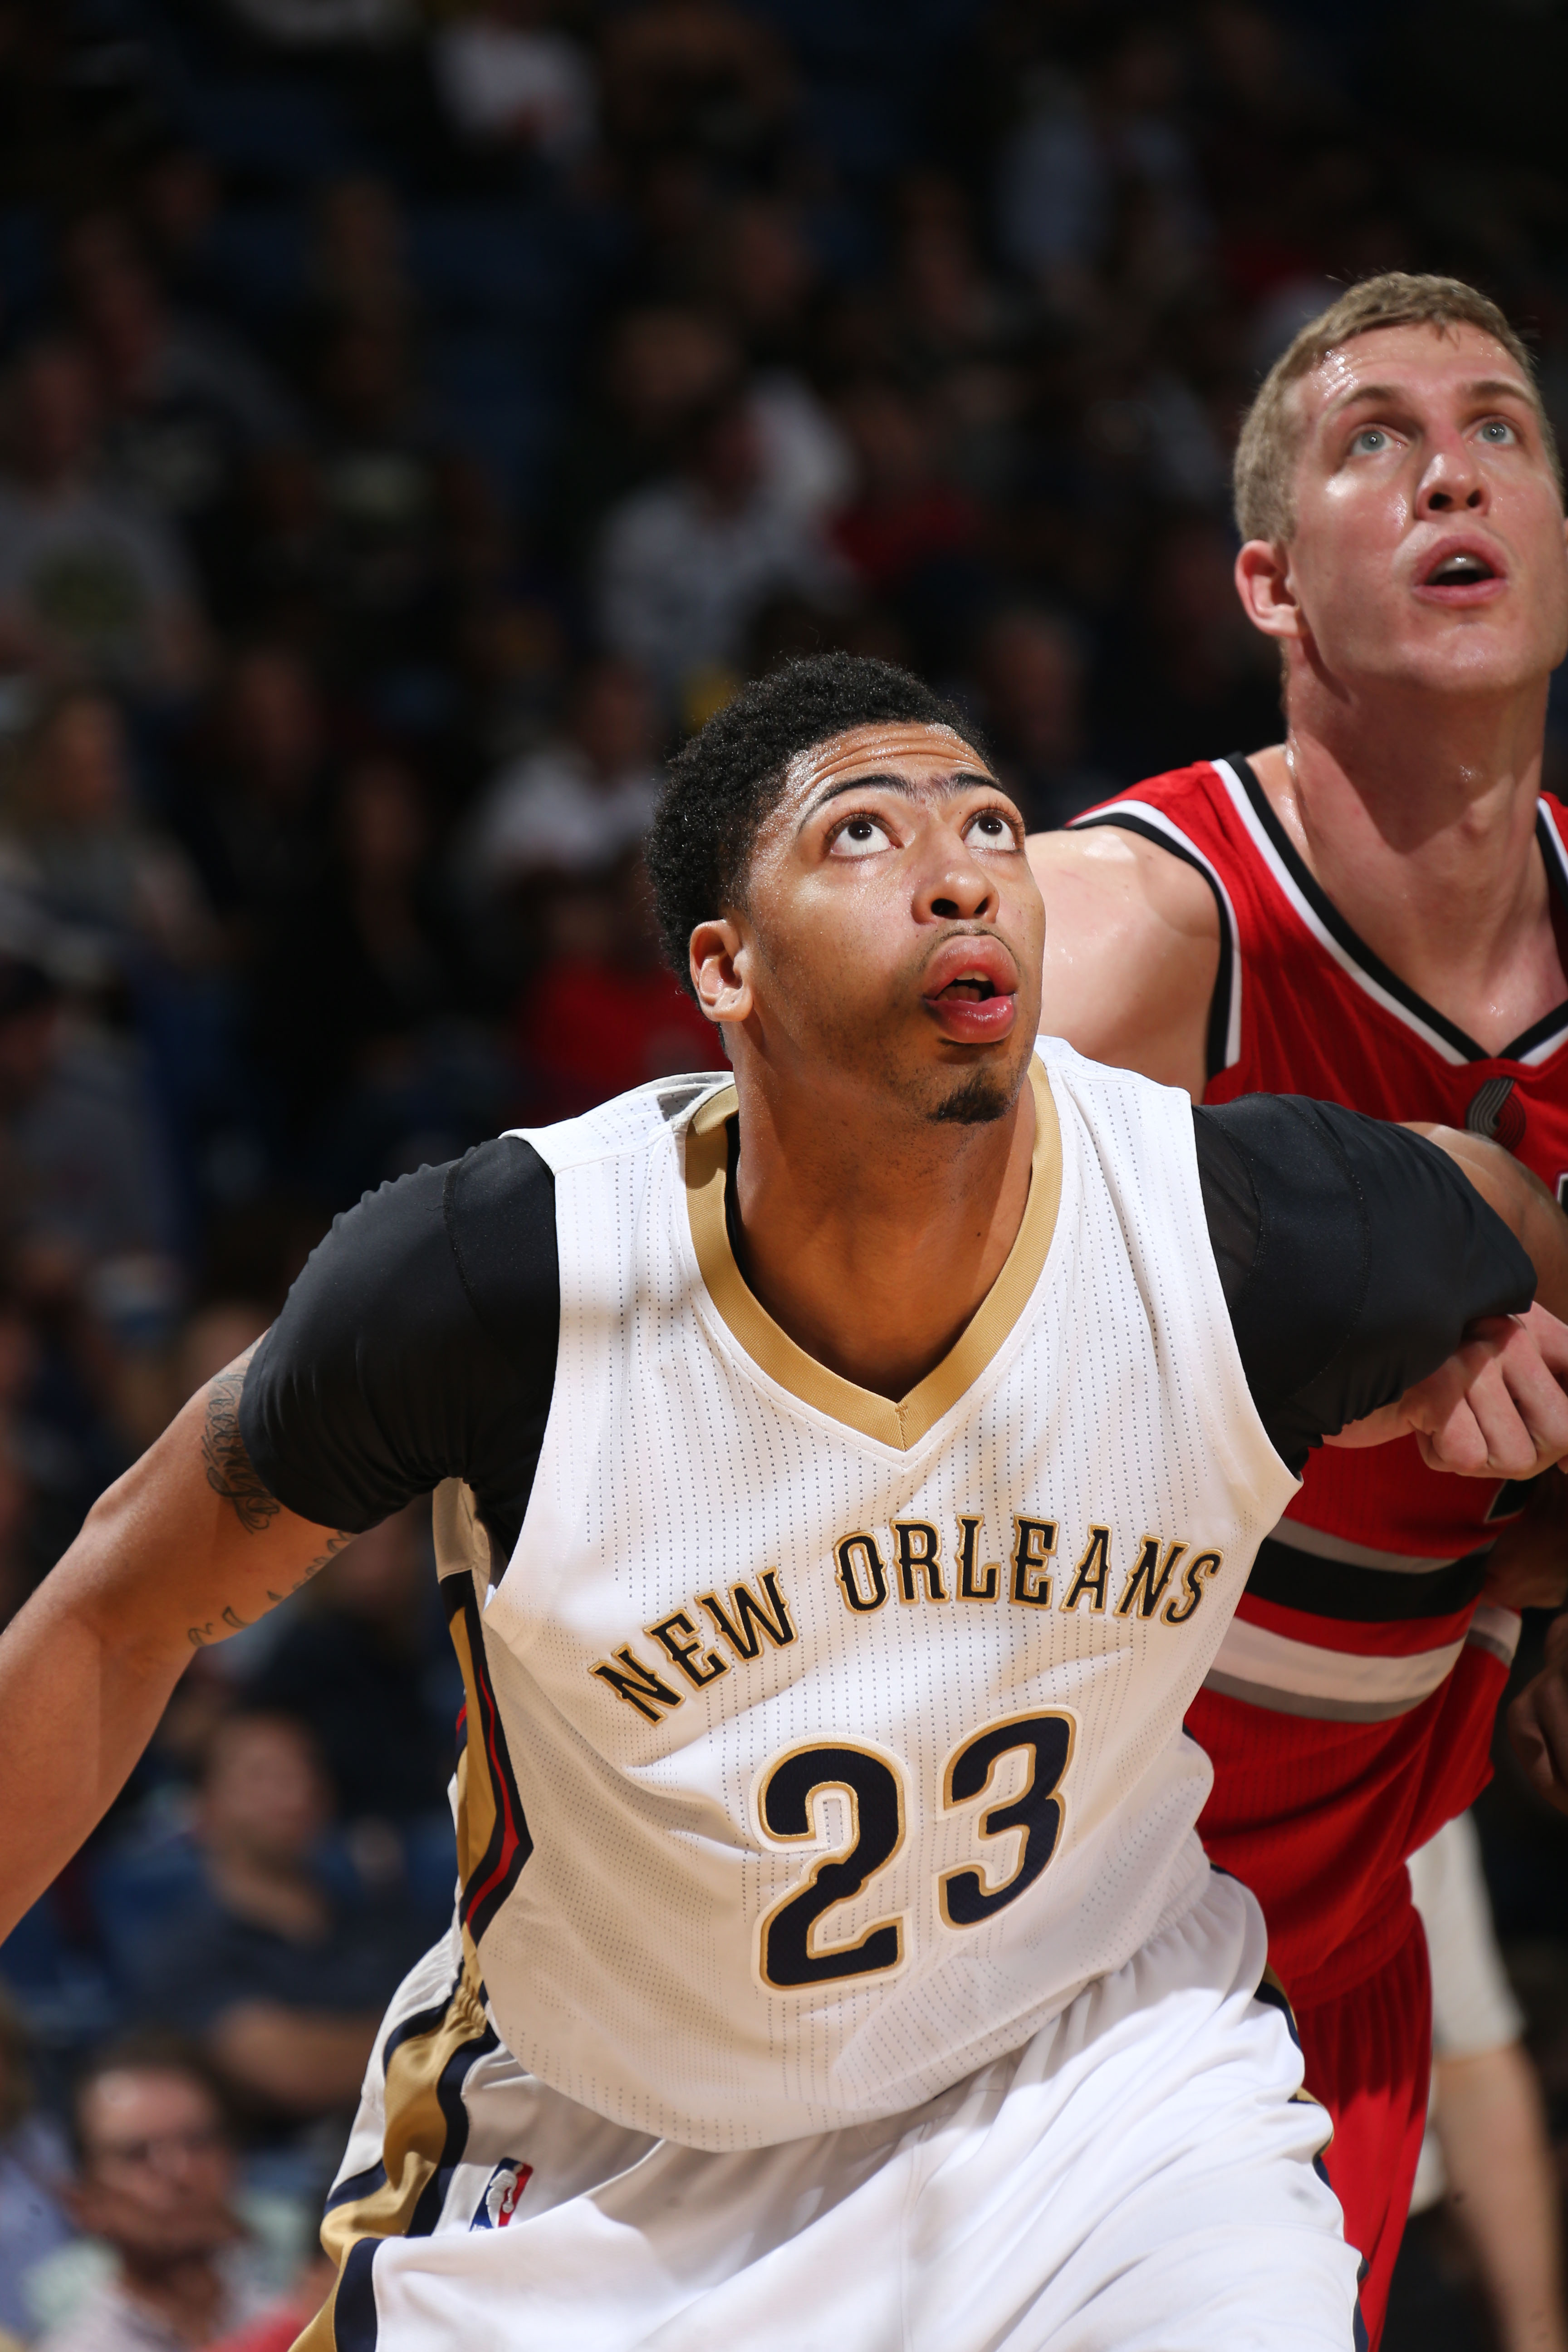 NEW ORLEANS, LA  - MARCH 18: Anthony Davis #23 of the New Orleans Pelicans defends the basket against the Portland Trail Blazers during the game on March 18, 2016 at Smoothie King Center in New Orleans, Louisiana. (Photo by Layne Murdoch Jr./NBAE via Gett